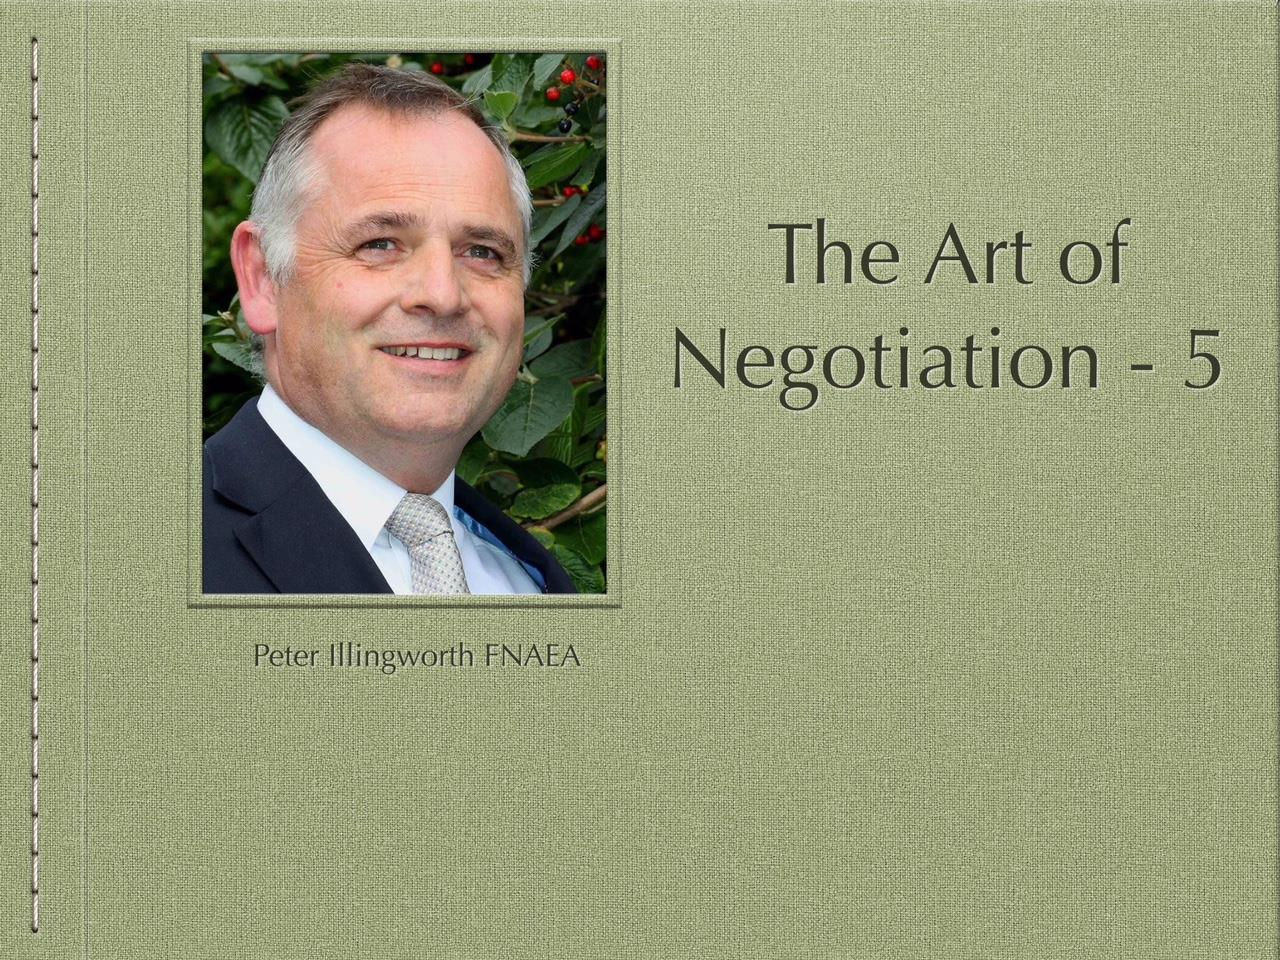 The Art of Negotiation - 5